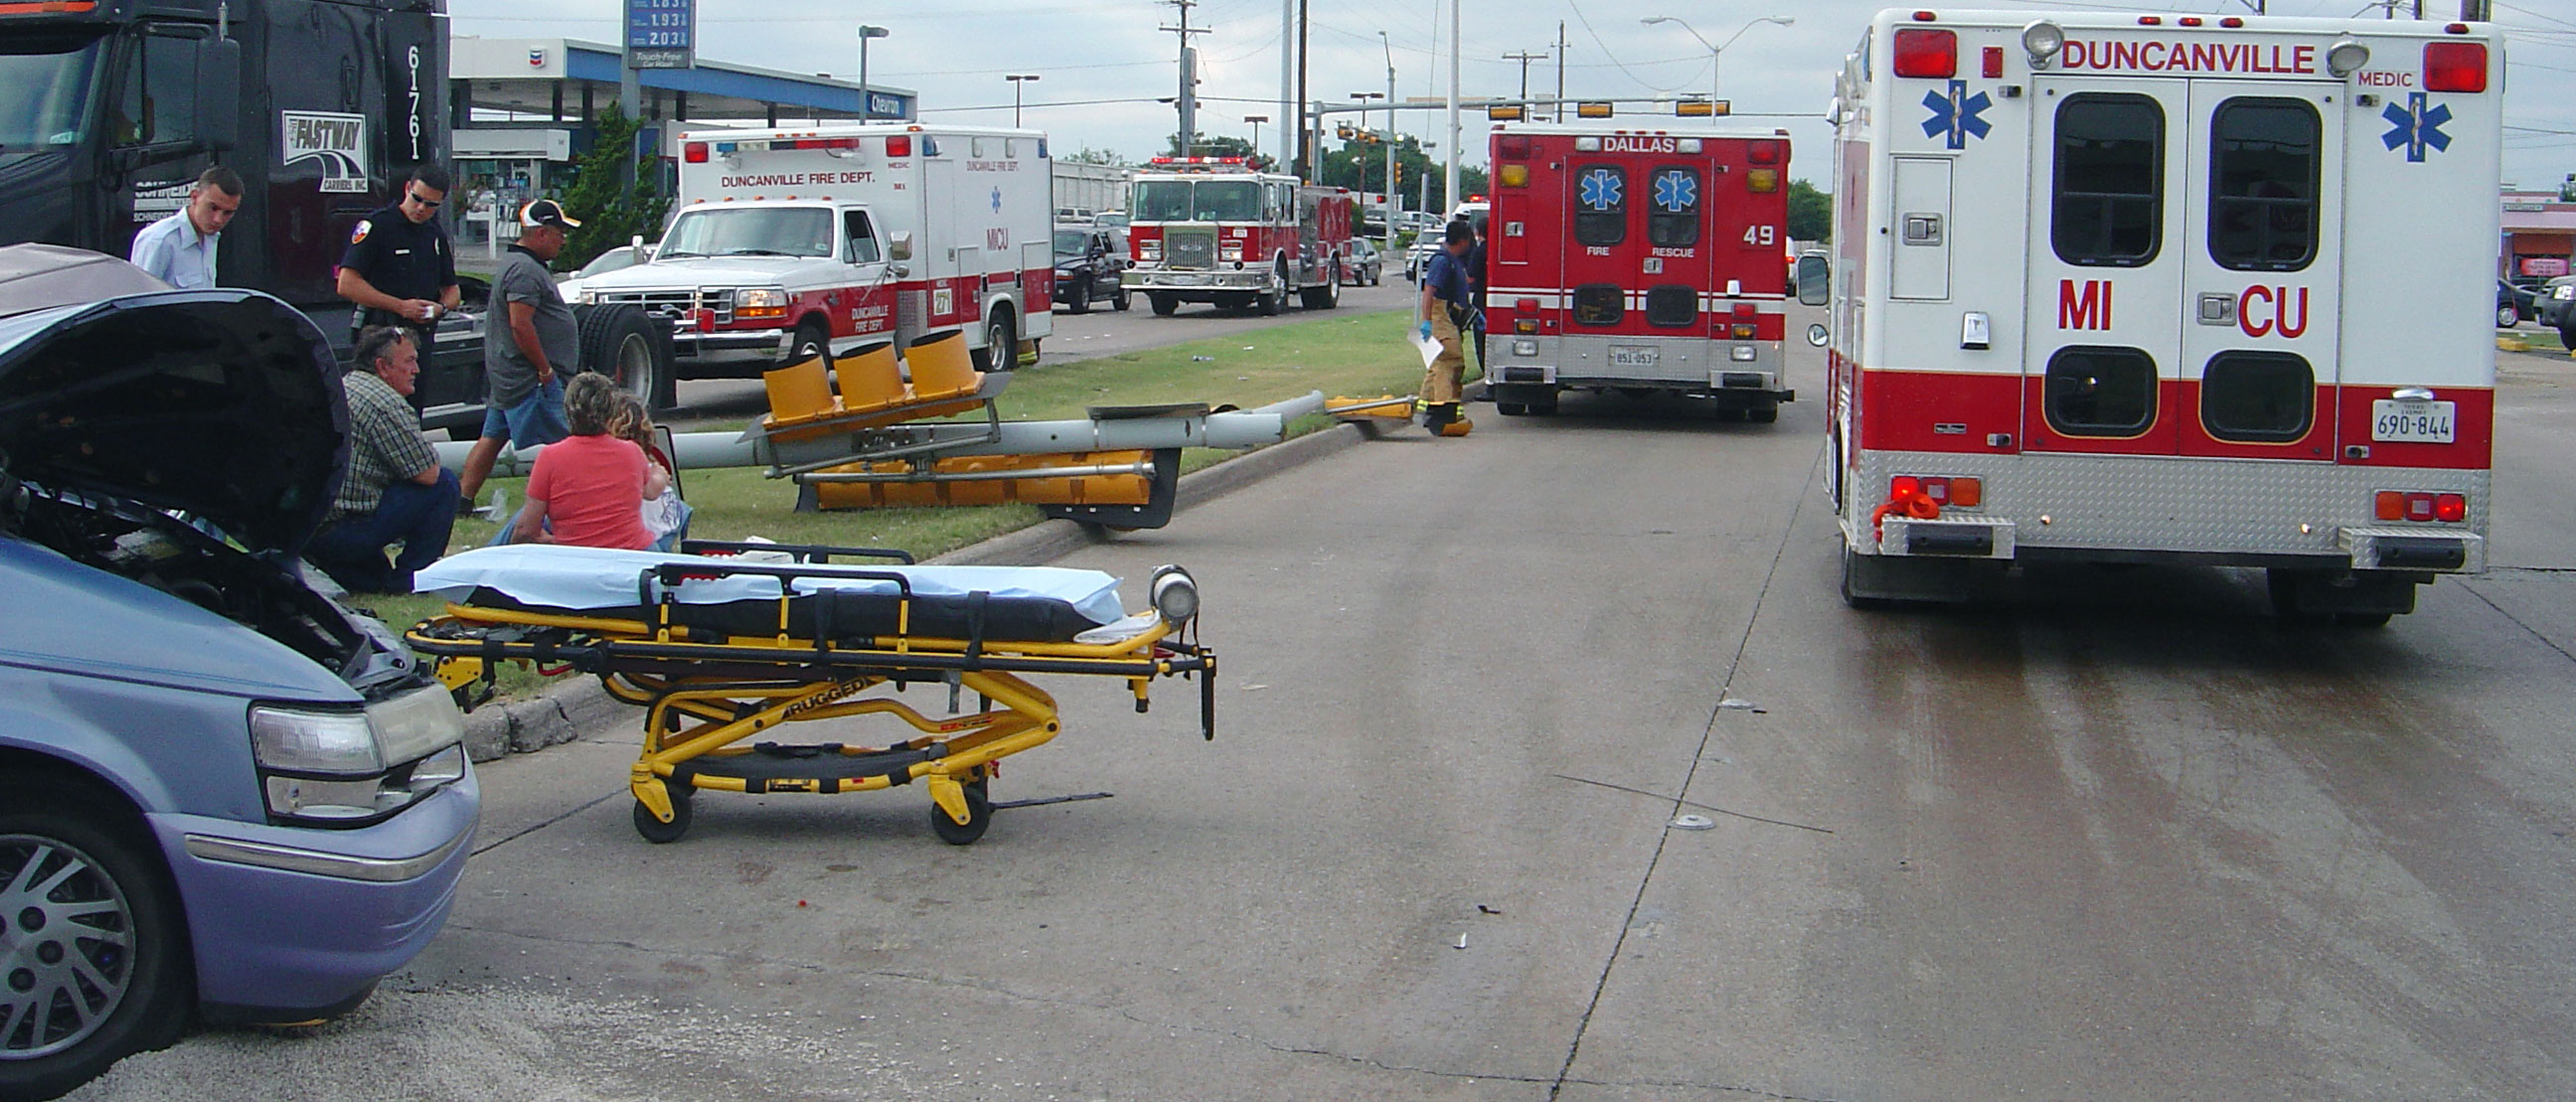 Ems Advanced Life Support City Of Duncanville Texas Usa